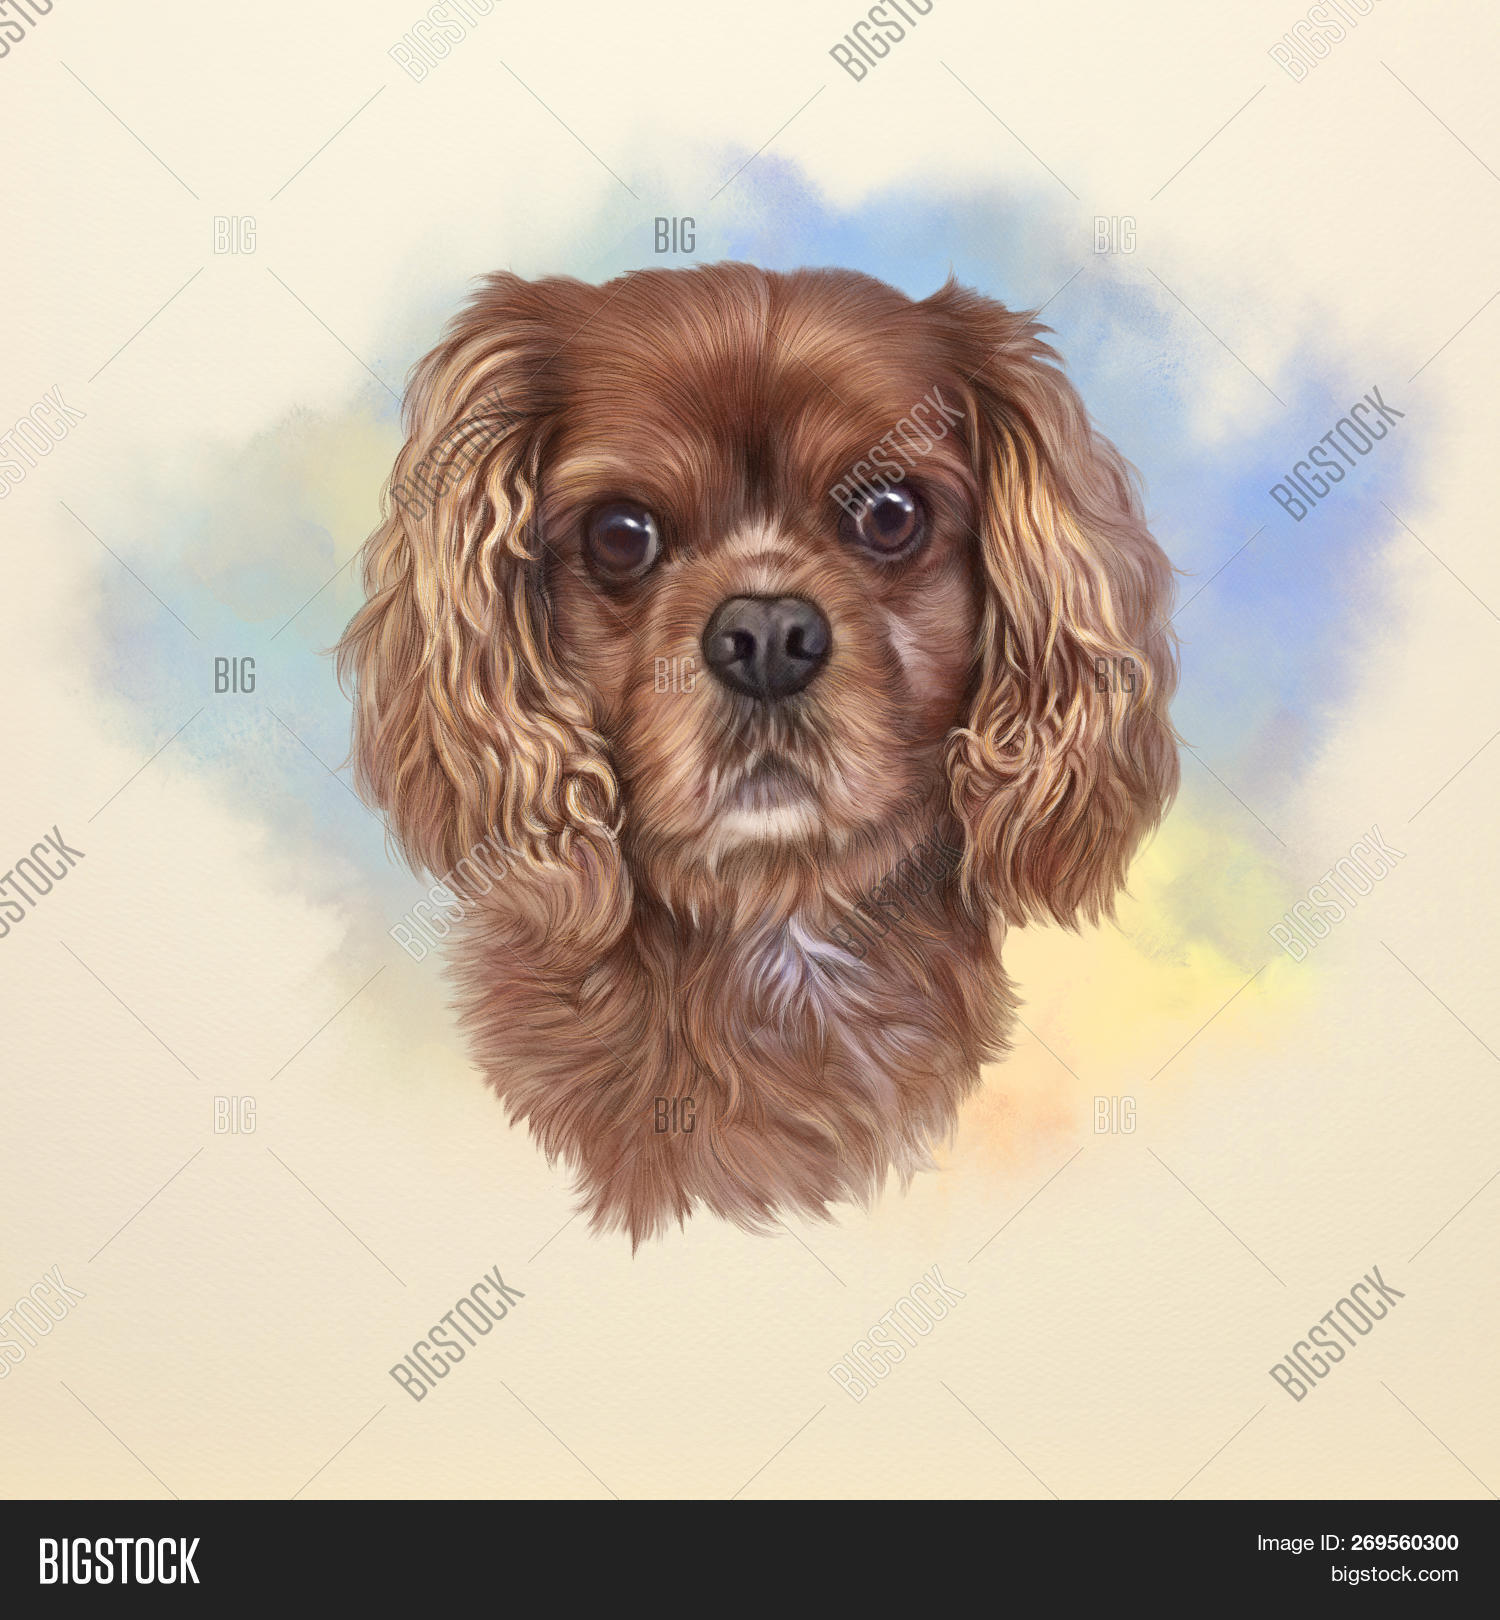 e0f4be8423a6 Cocker Spaniel Dog. Image & Photo (Free Trial) | Bigstock